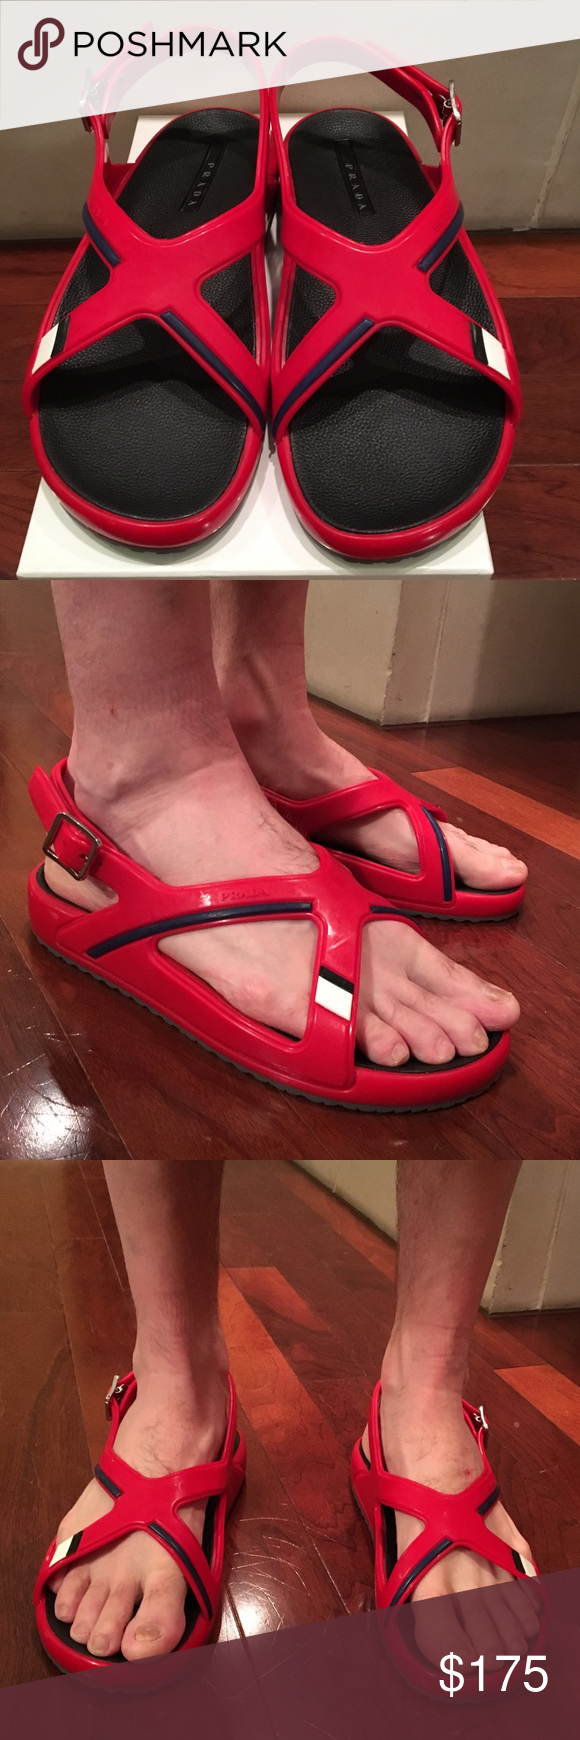 d5ab6ff07d99 Prada Men s Crisscross Sandals Rubber Red and Blue Brand new men s Prada  sandals. These are labeled a size 9 but they run really big and fit more  like a 12.